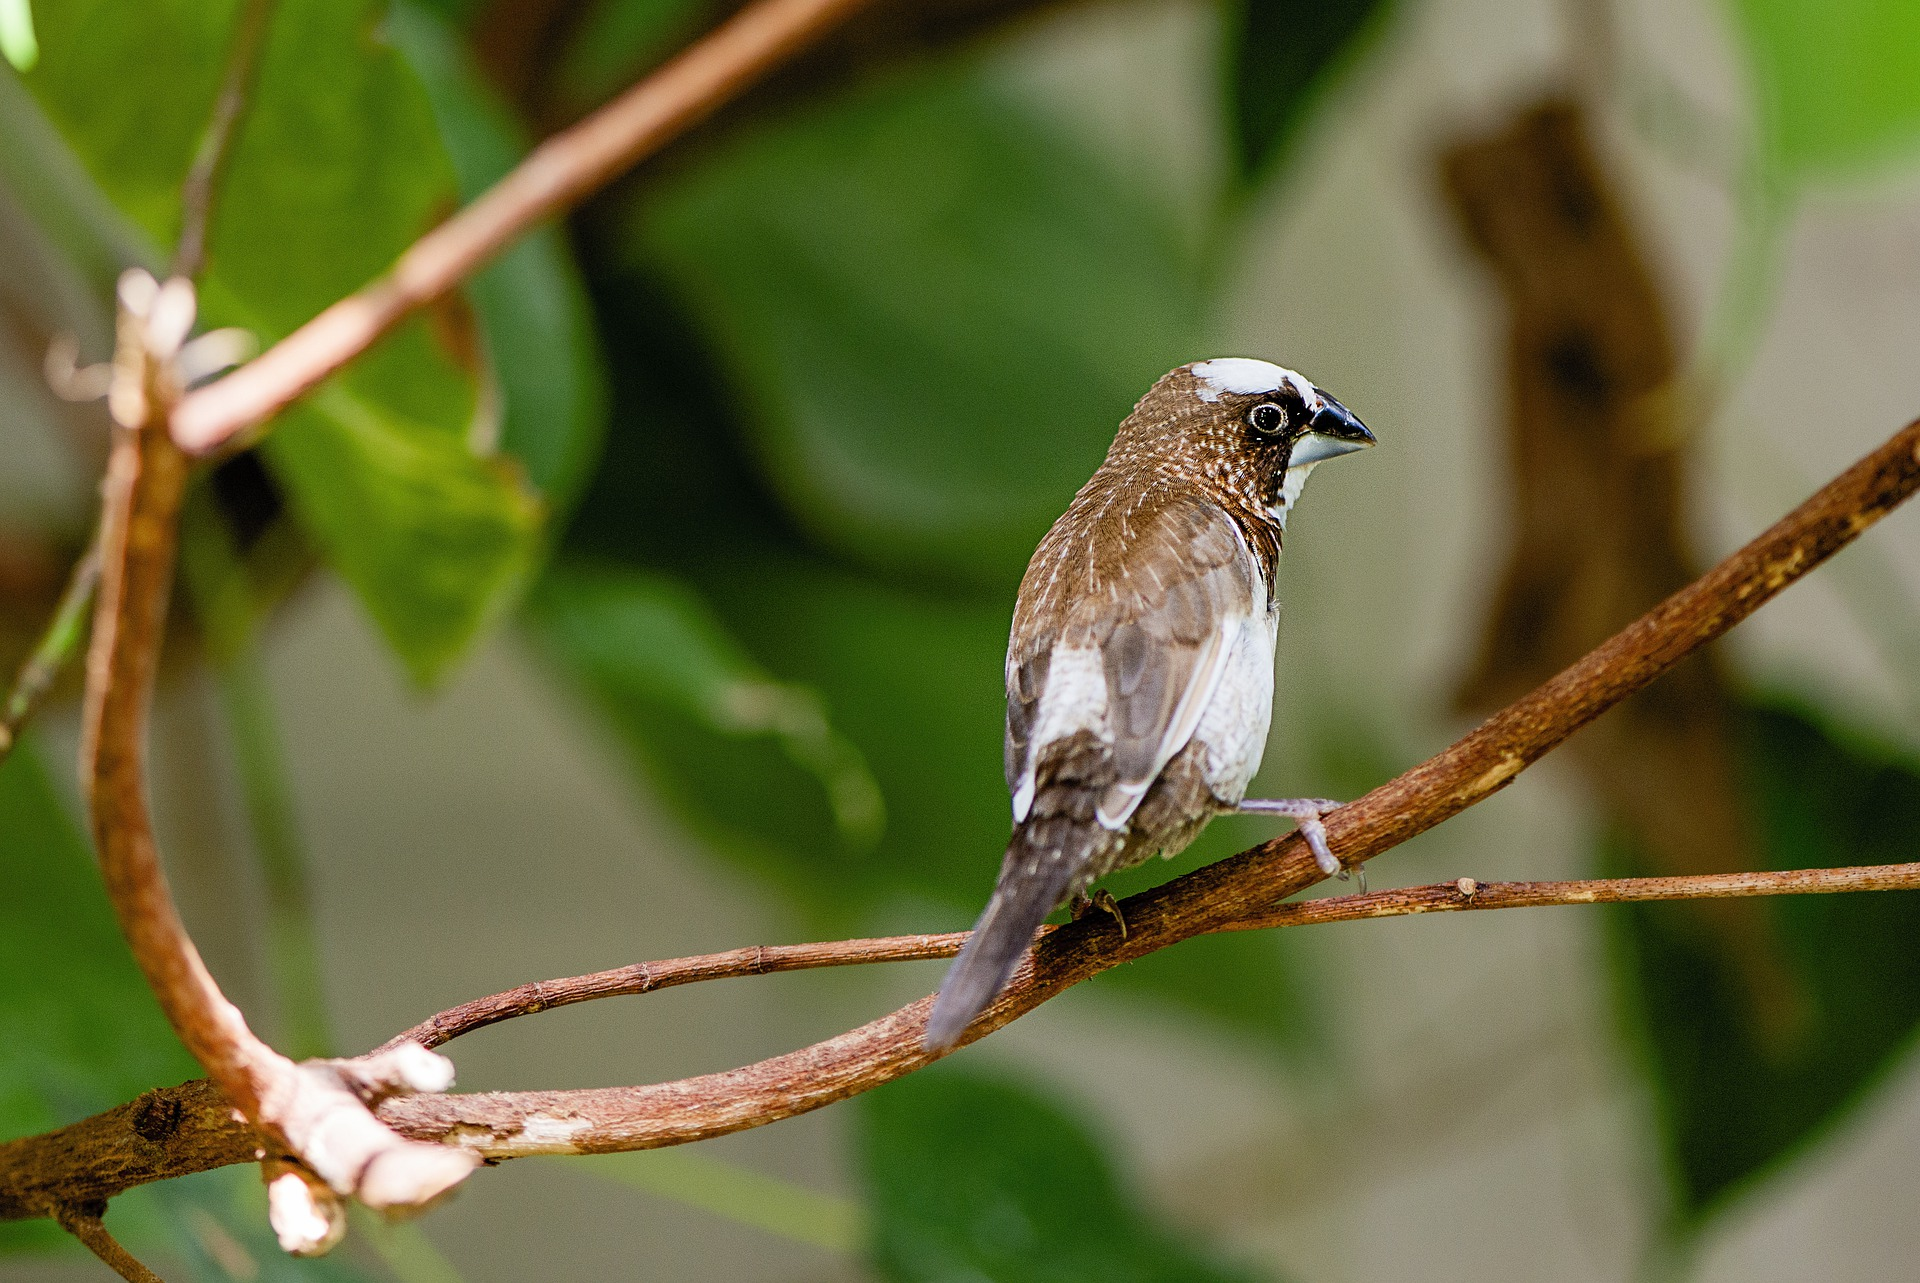 Bengalese finches, a brown, black and white bird, can't distinguish orange from red